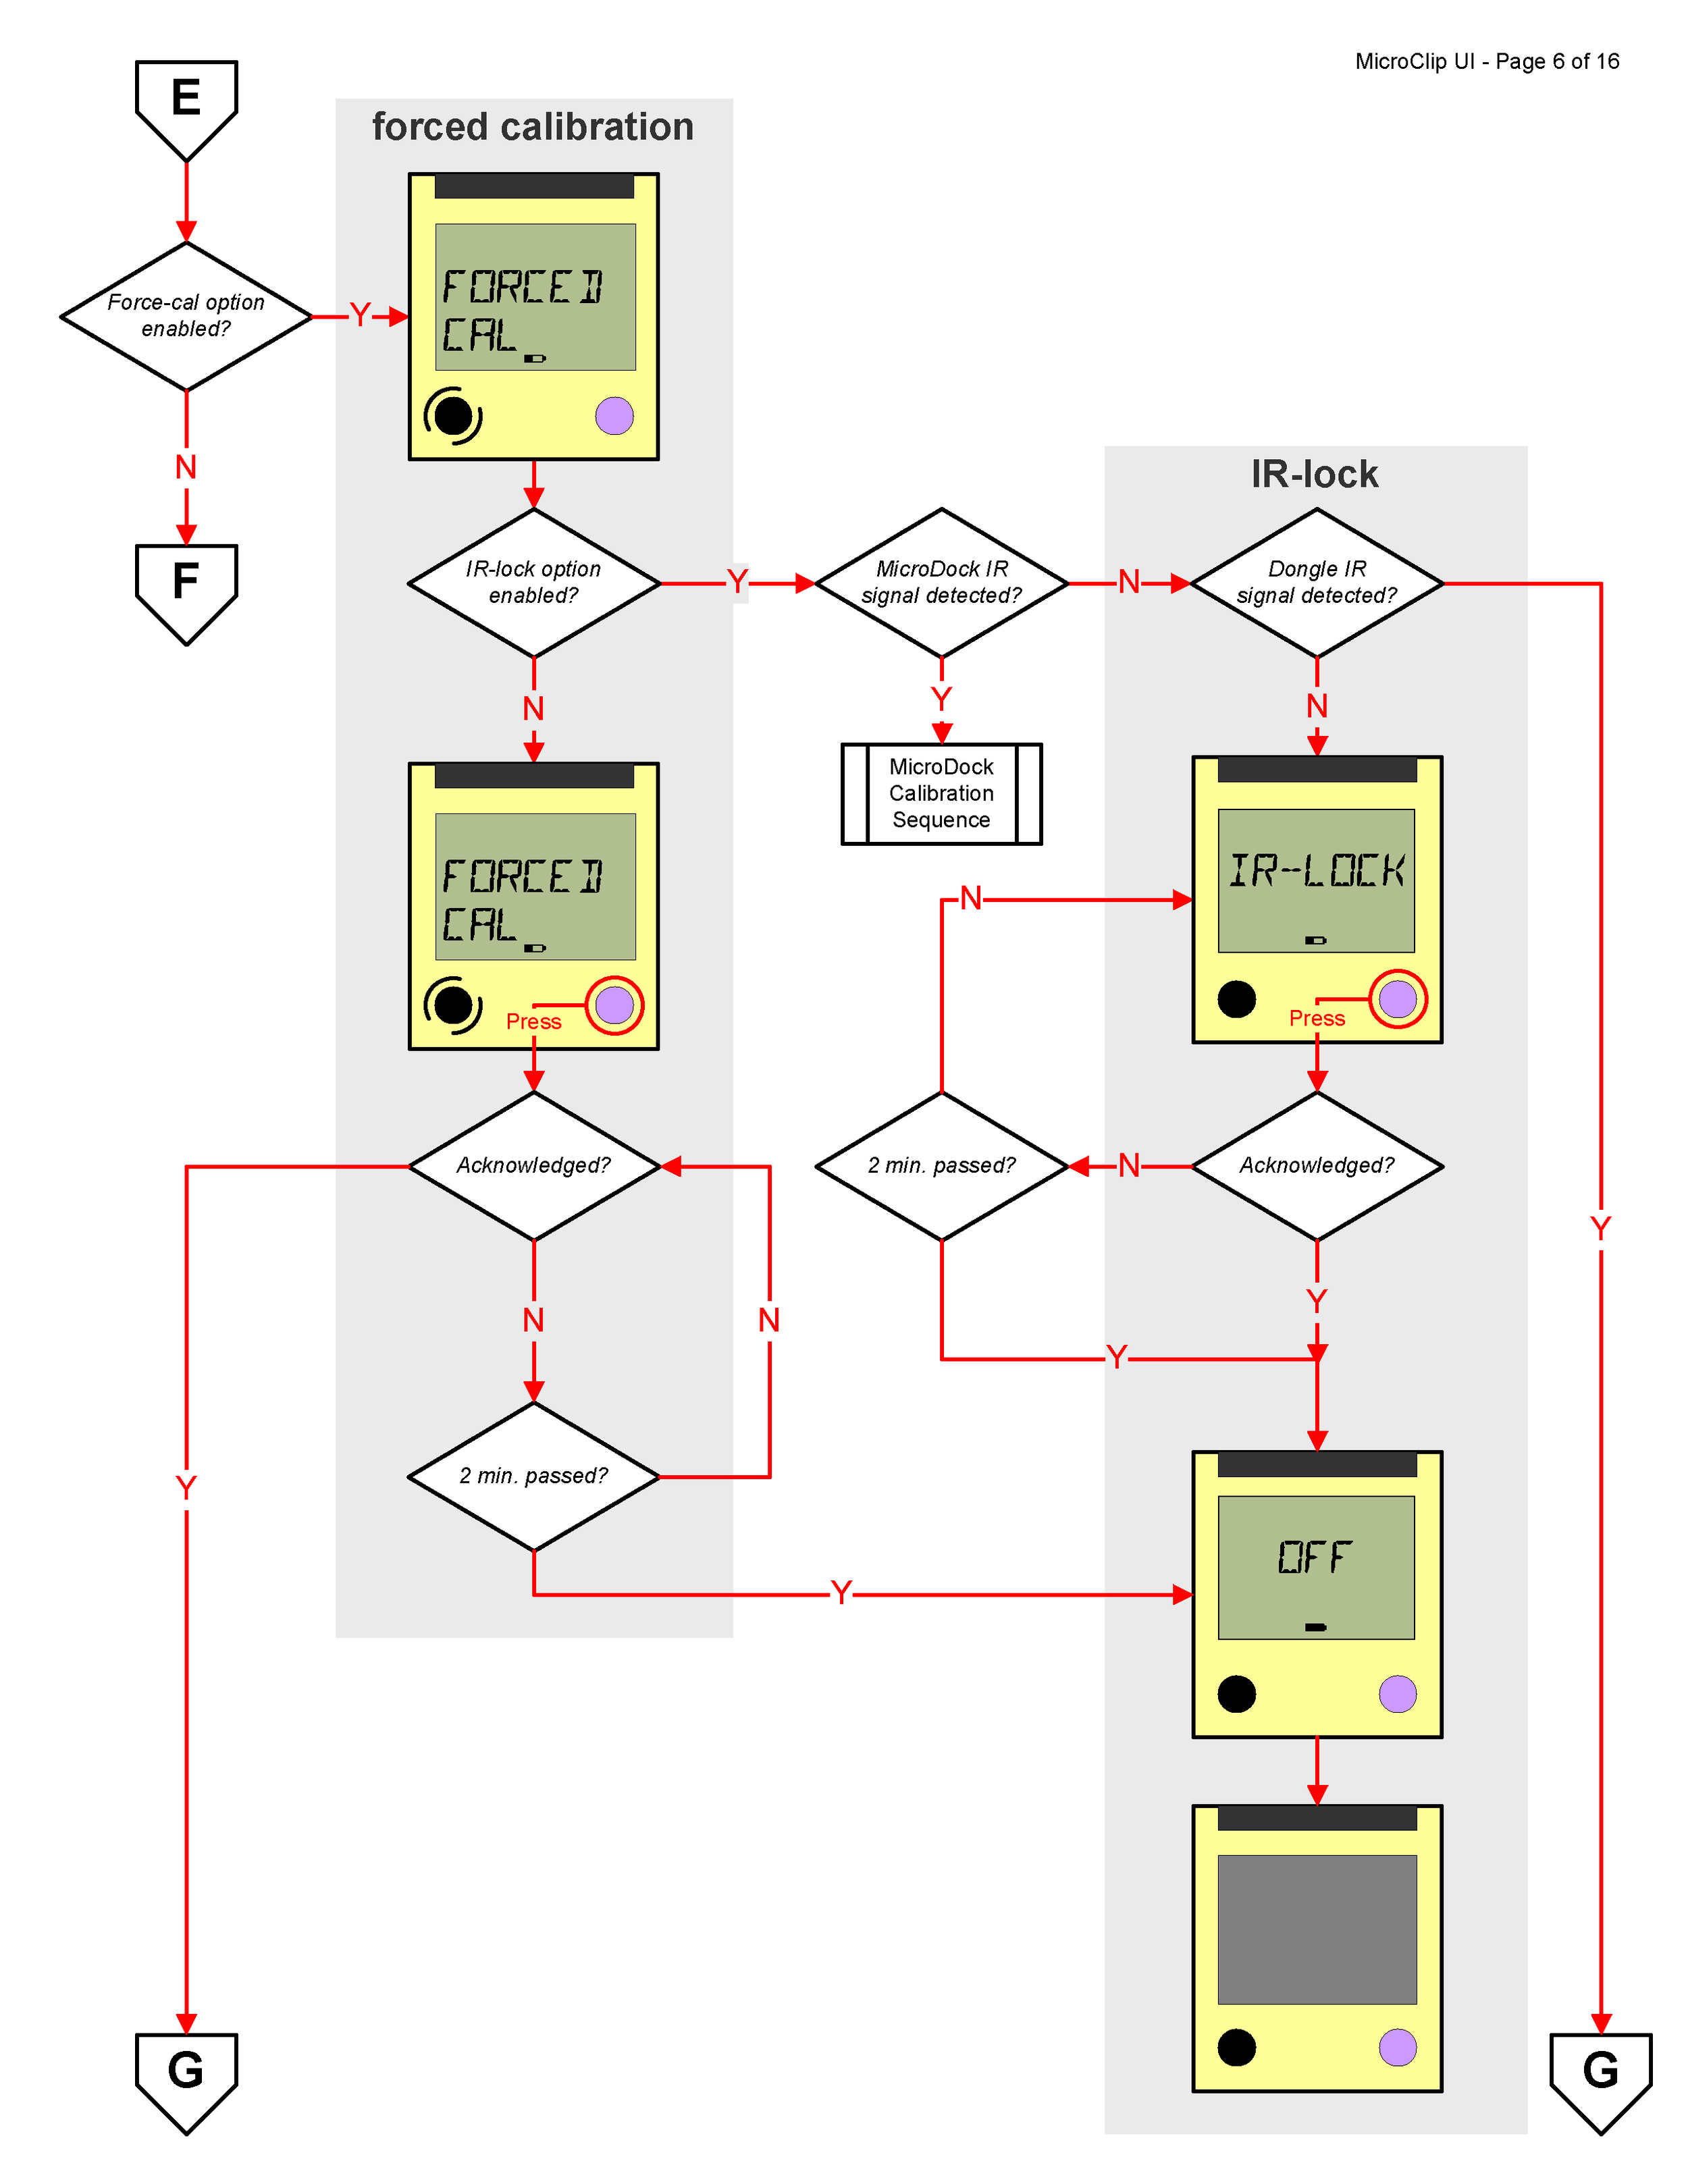 gmc.uiflow06.forcedcal.png